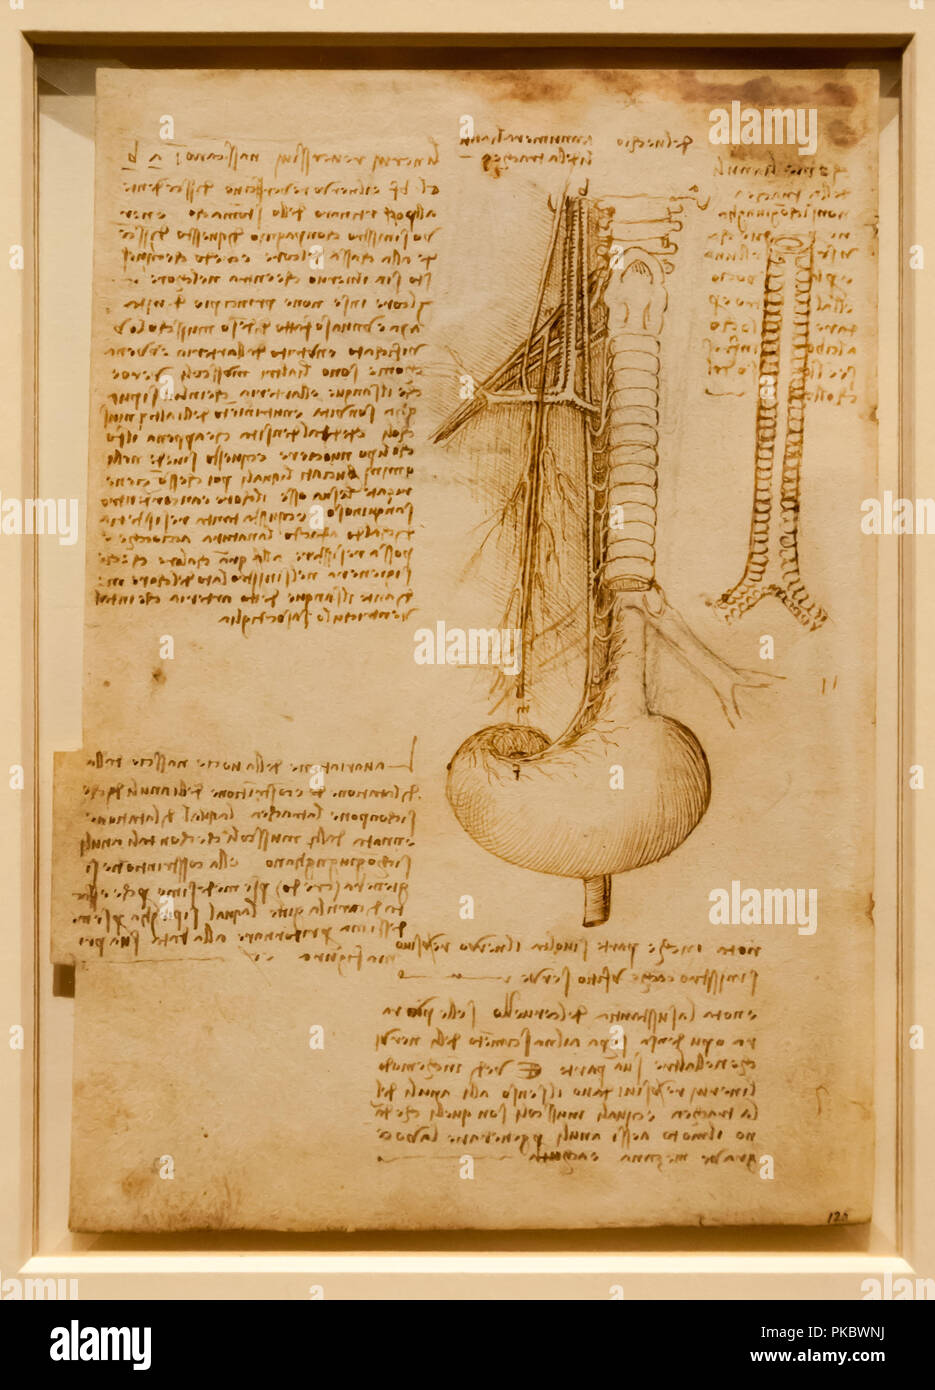 Leonardo da Vinci's human spine anatomical drawing at The Queen's Gallery, London, England, UK - Stock Image